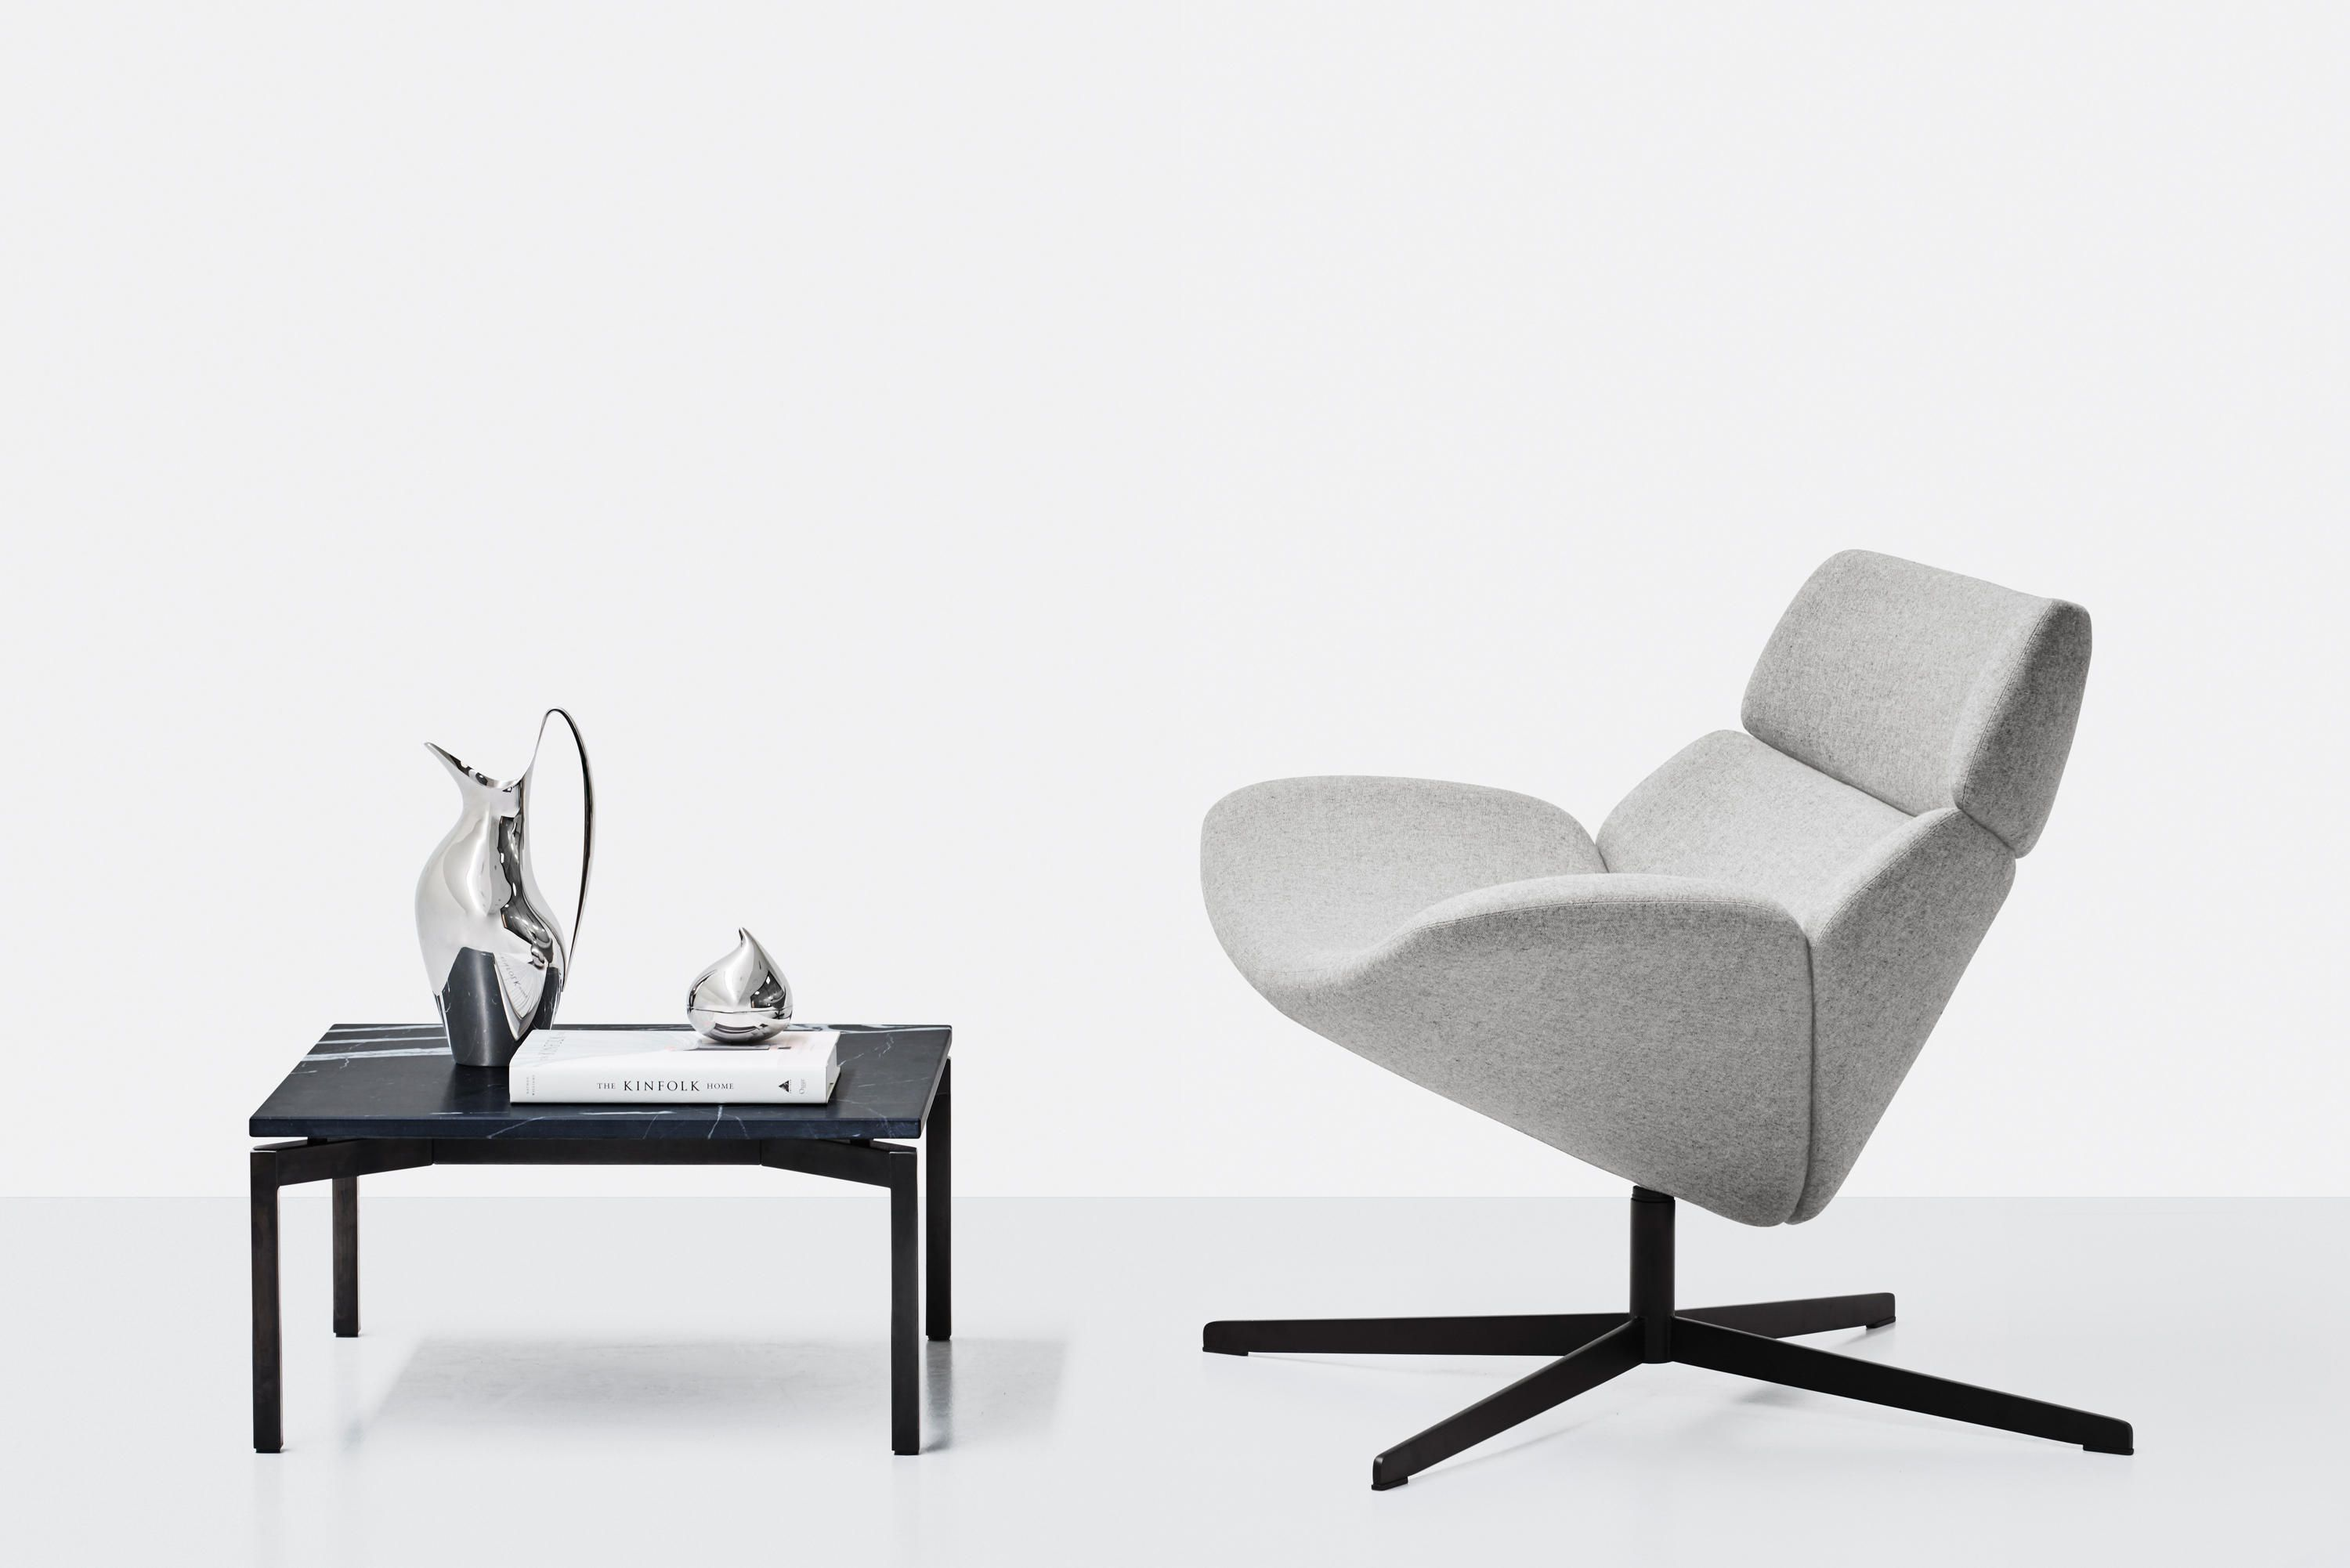 ASKO Designer Lounge chairs from Erik